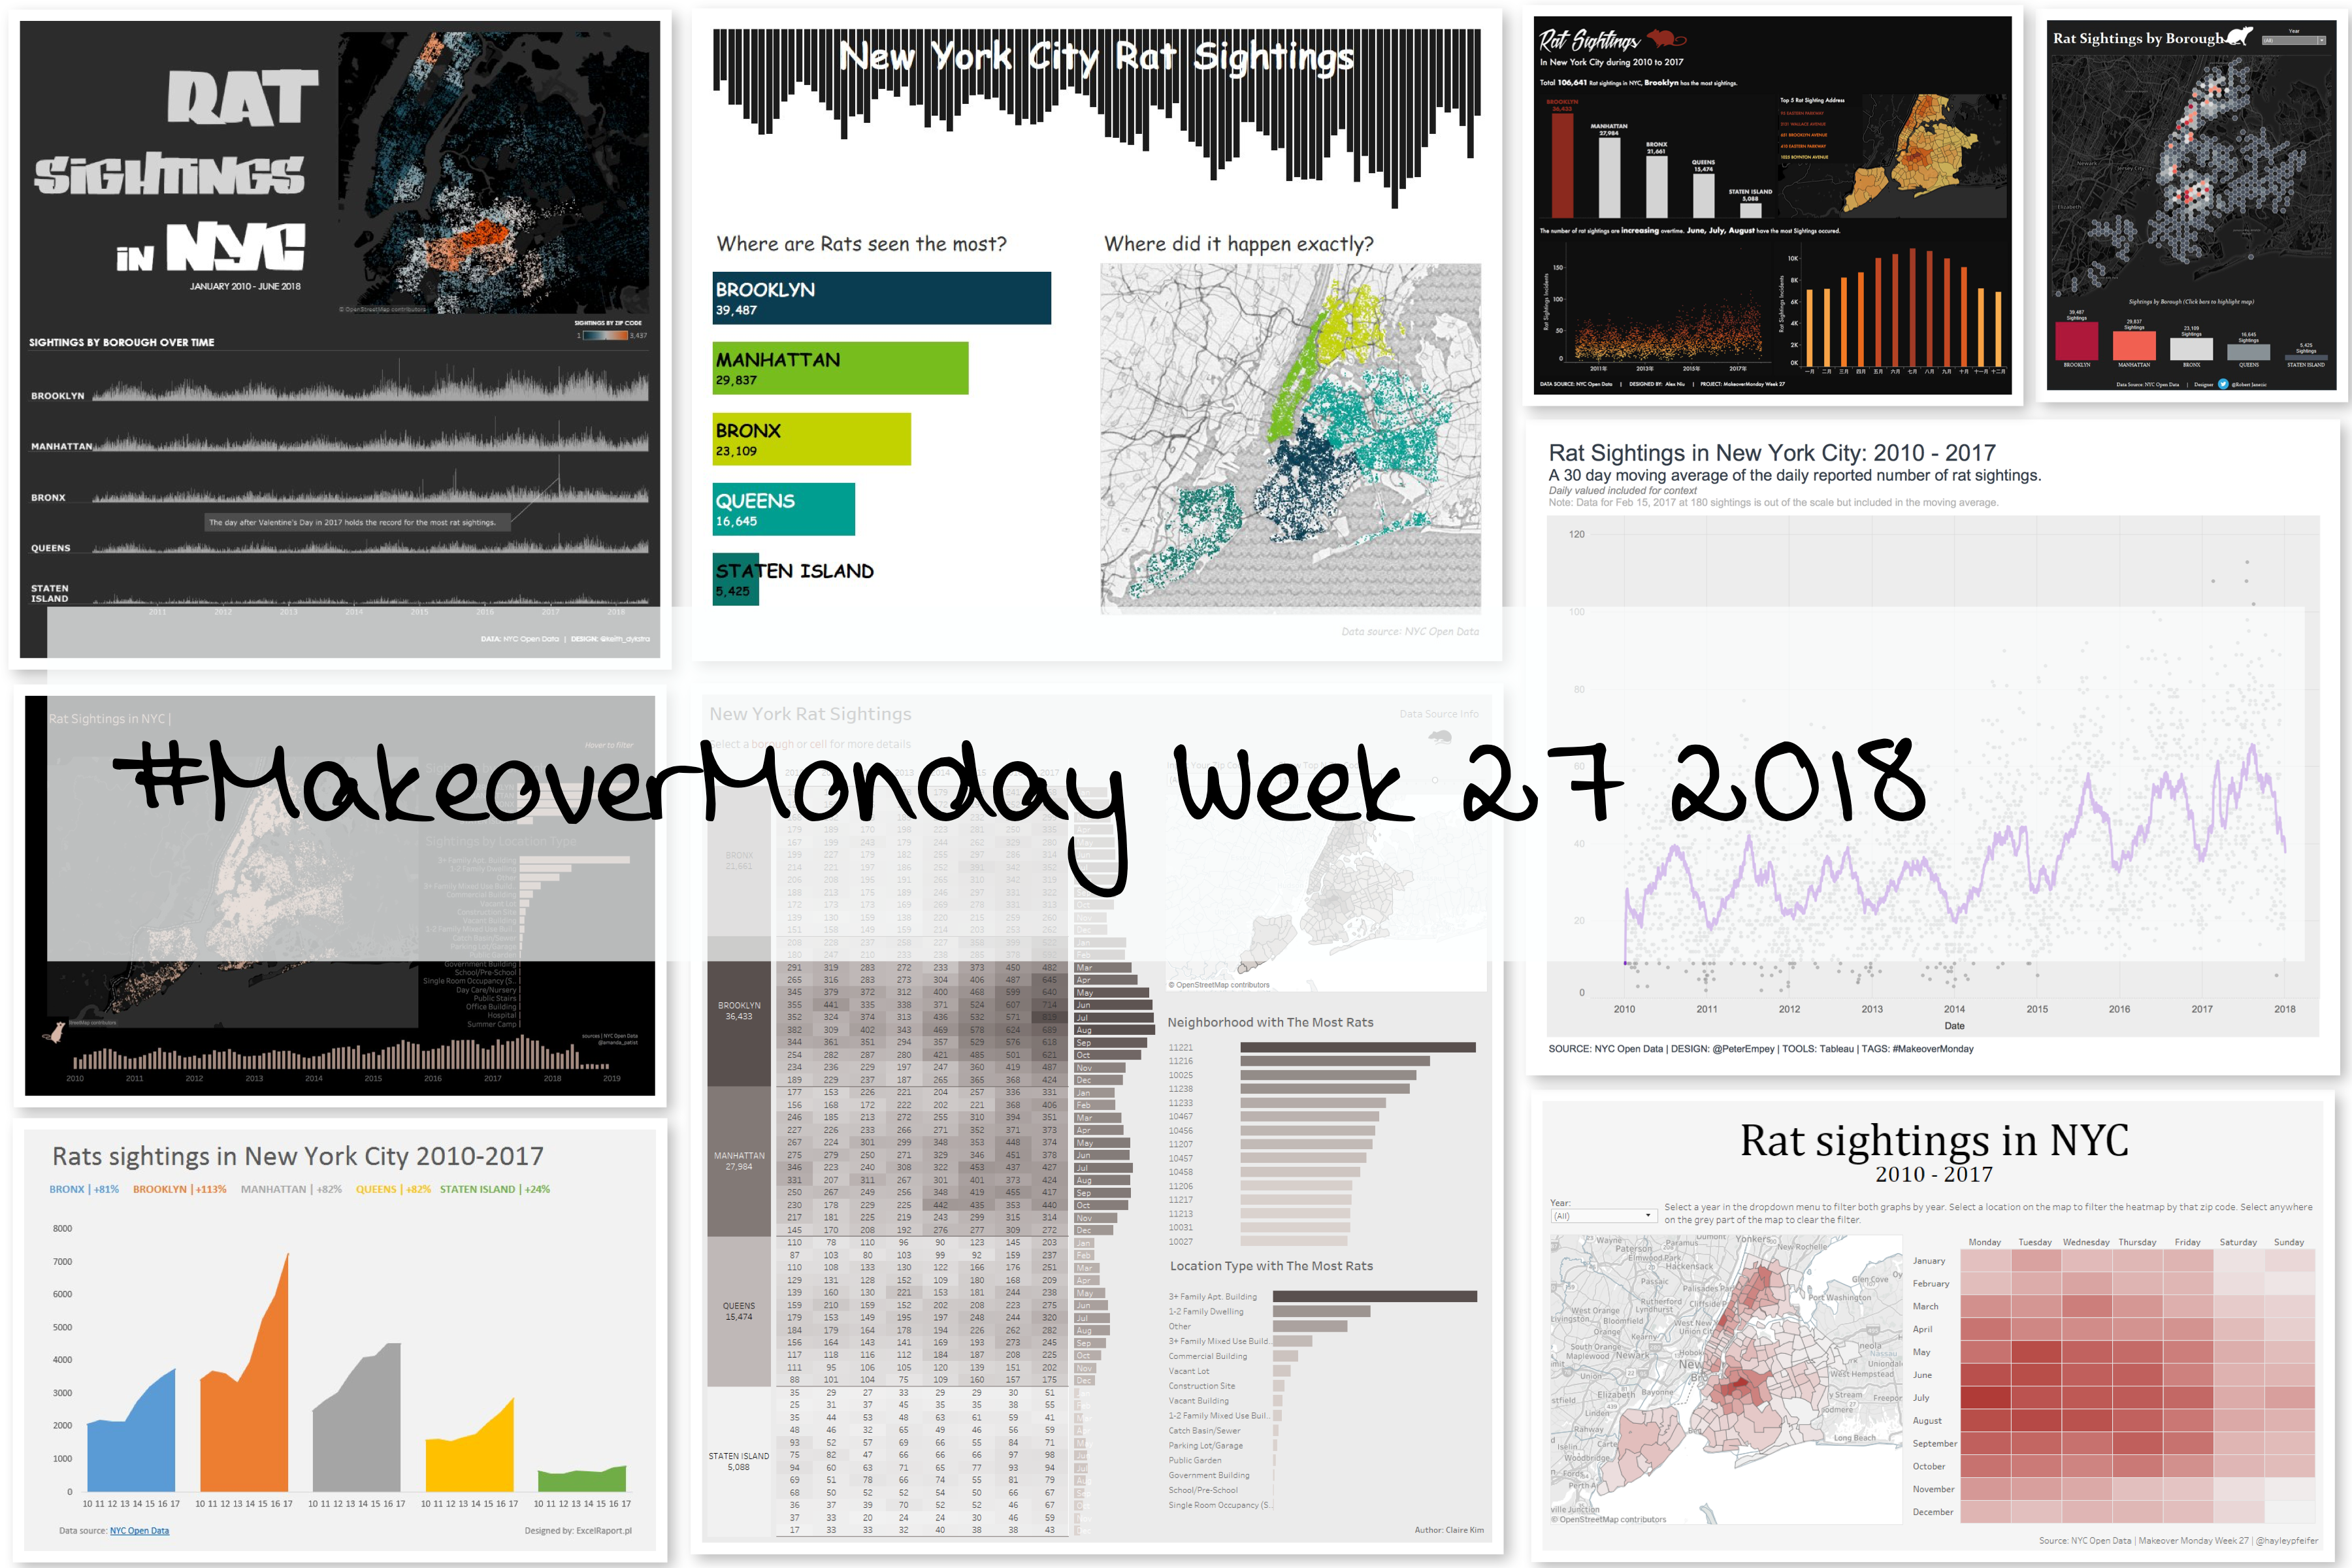 makeovermonday/2018w27-rat-sightings-in-new-york-city